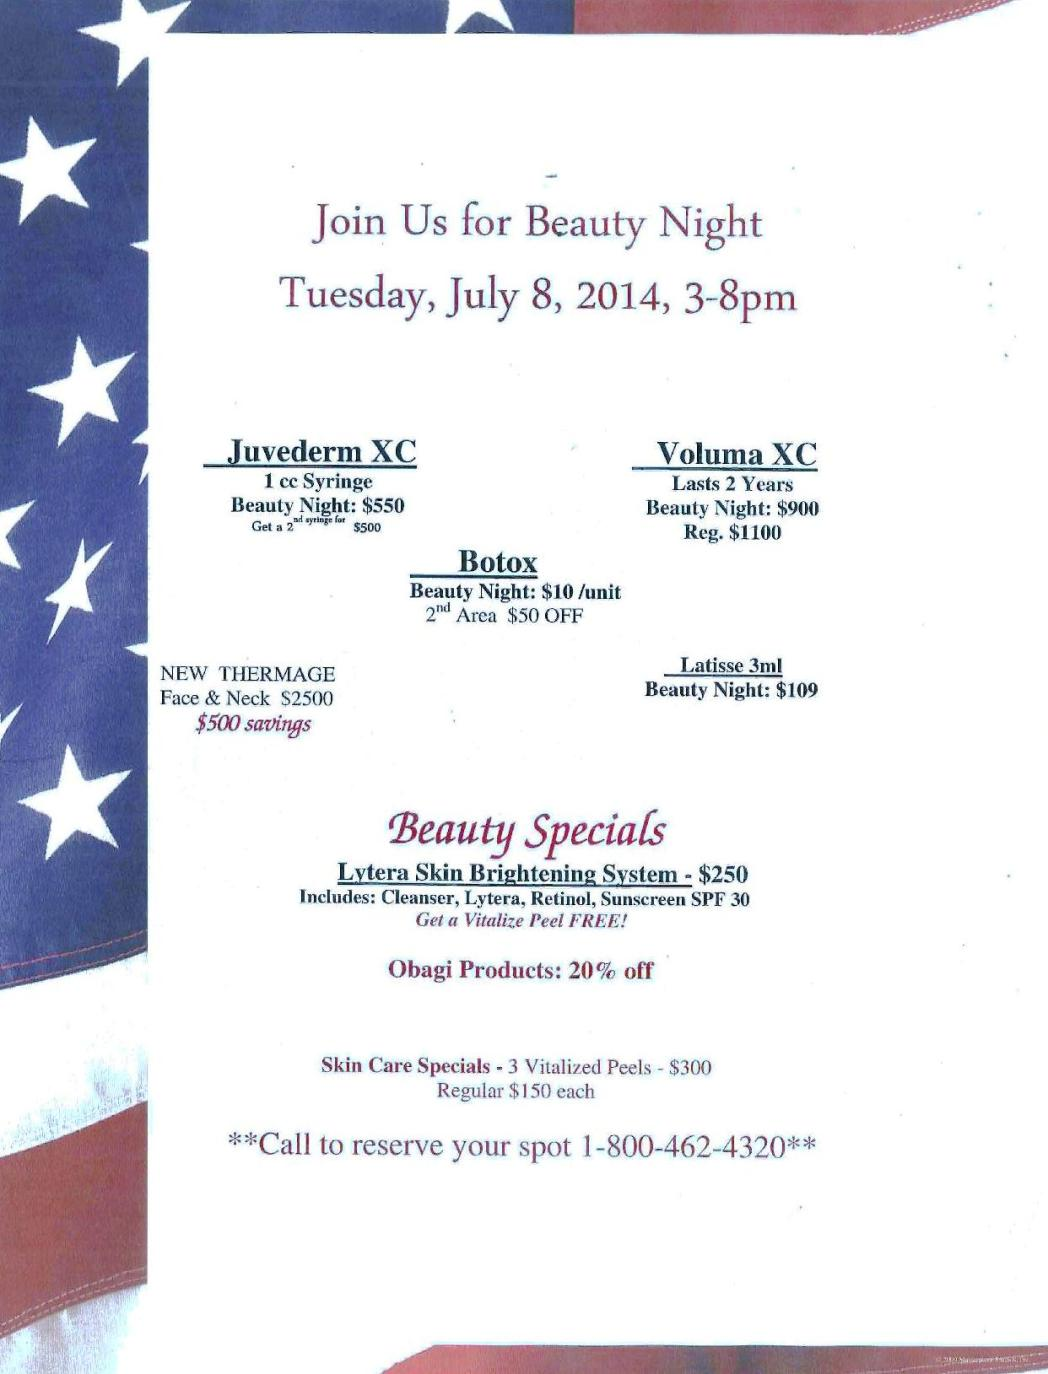 Join Us for BEAUTY NIGHT